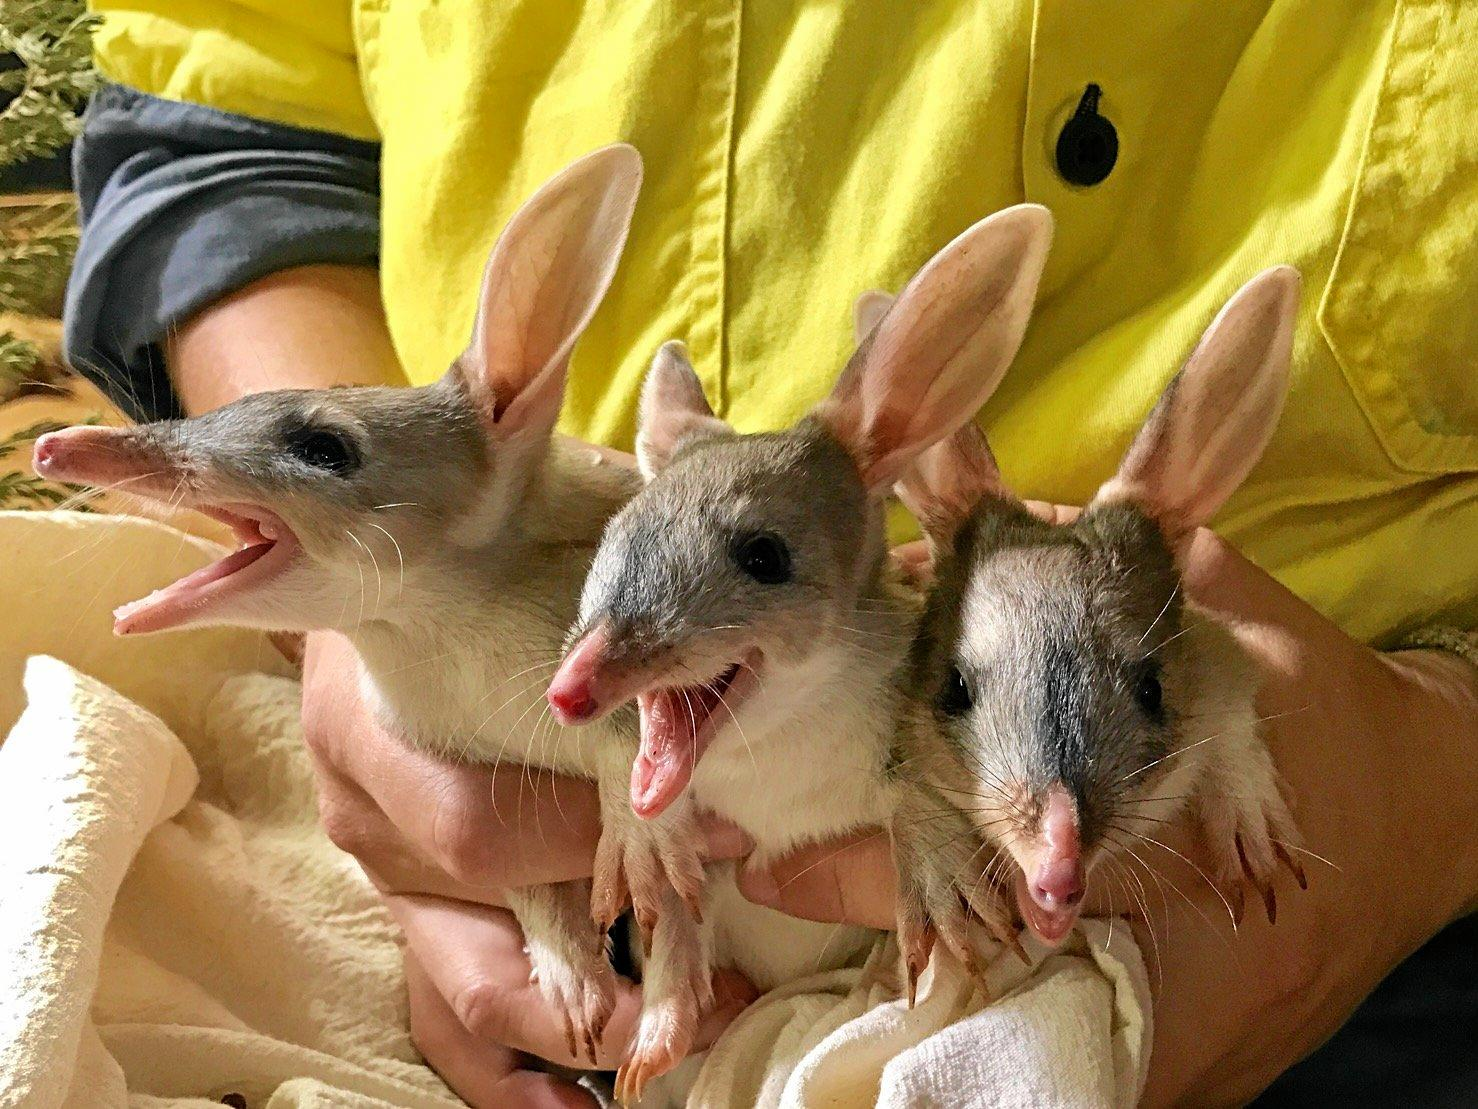 Bilby triplets came out of their mother's pouch at the Bilby Burrow earlier this week, the latest additions to the bilby breeding program.